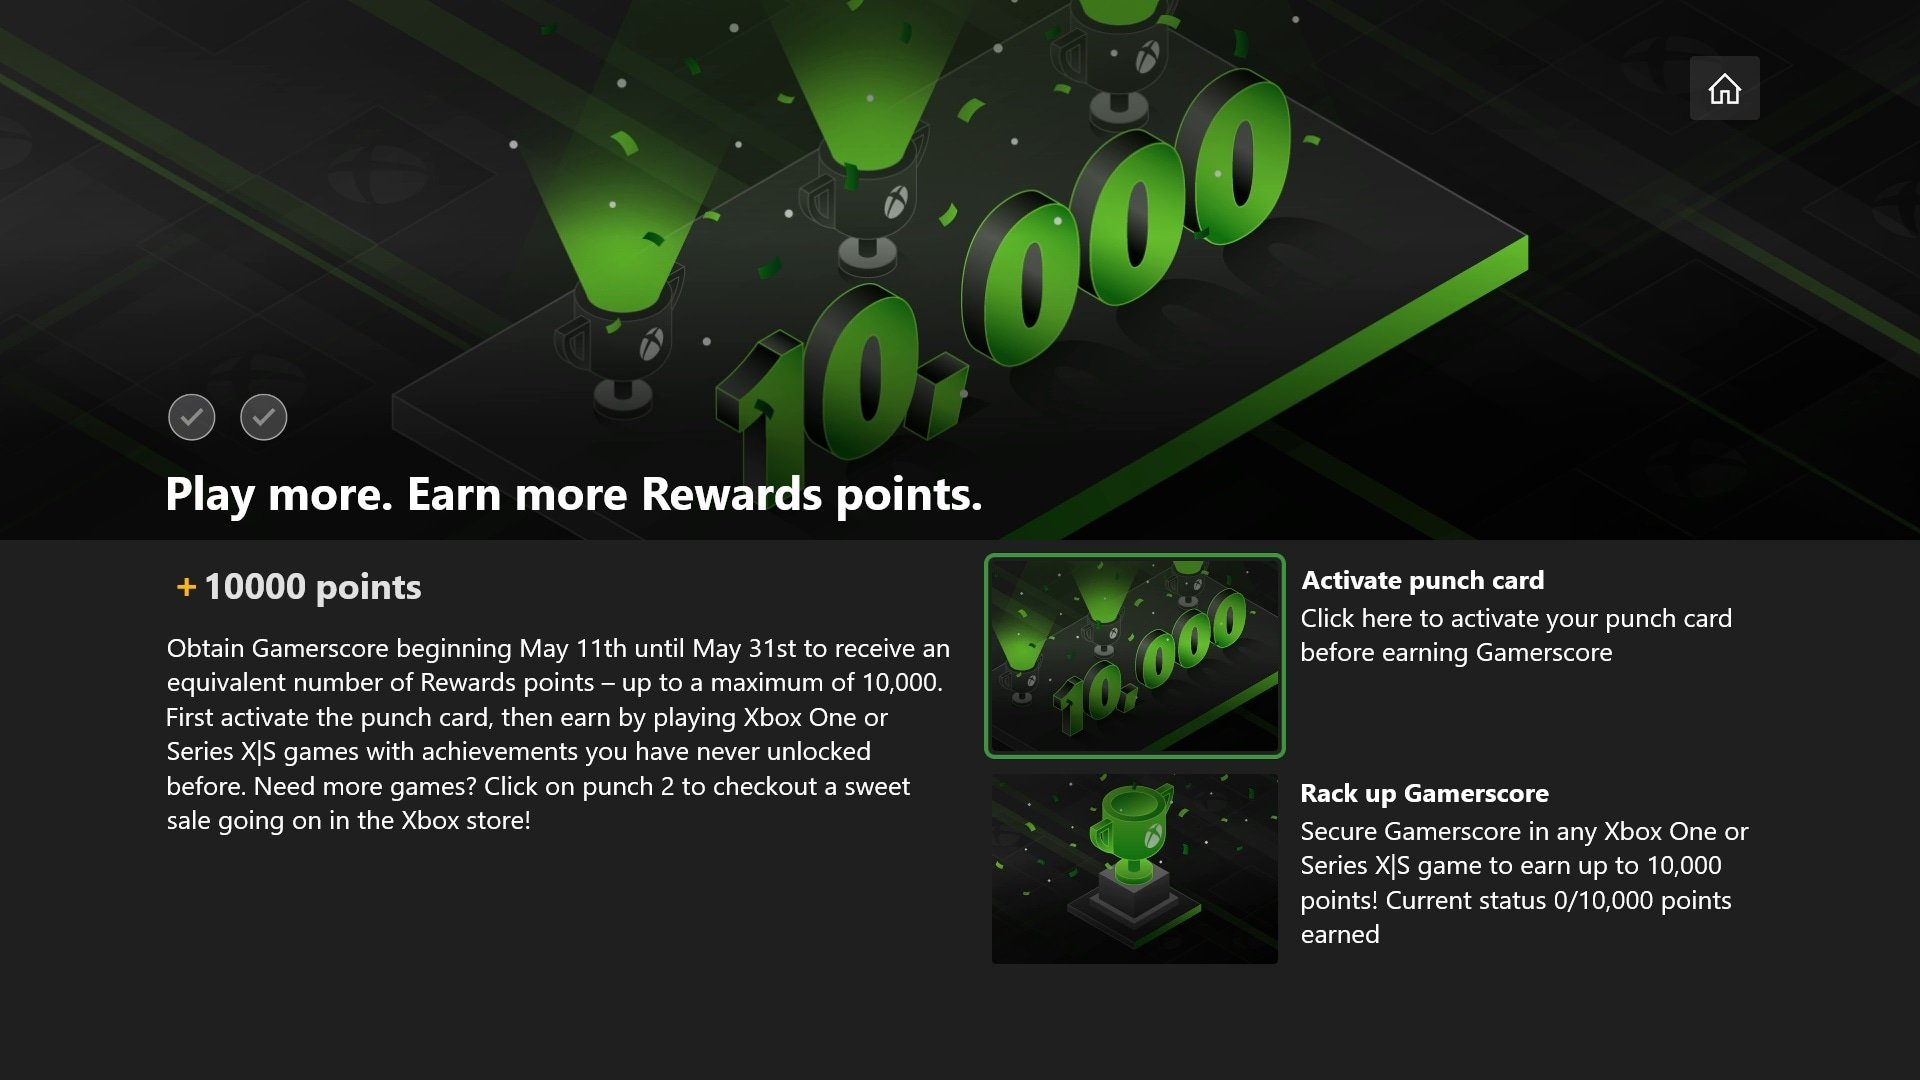 May Gamerscore Challenge 10,000 Microsoft Rewards Points for 10,000 Gamerscore